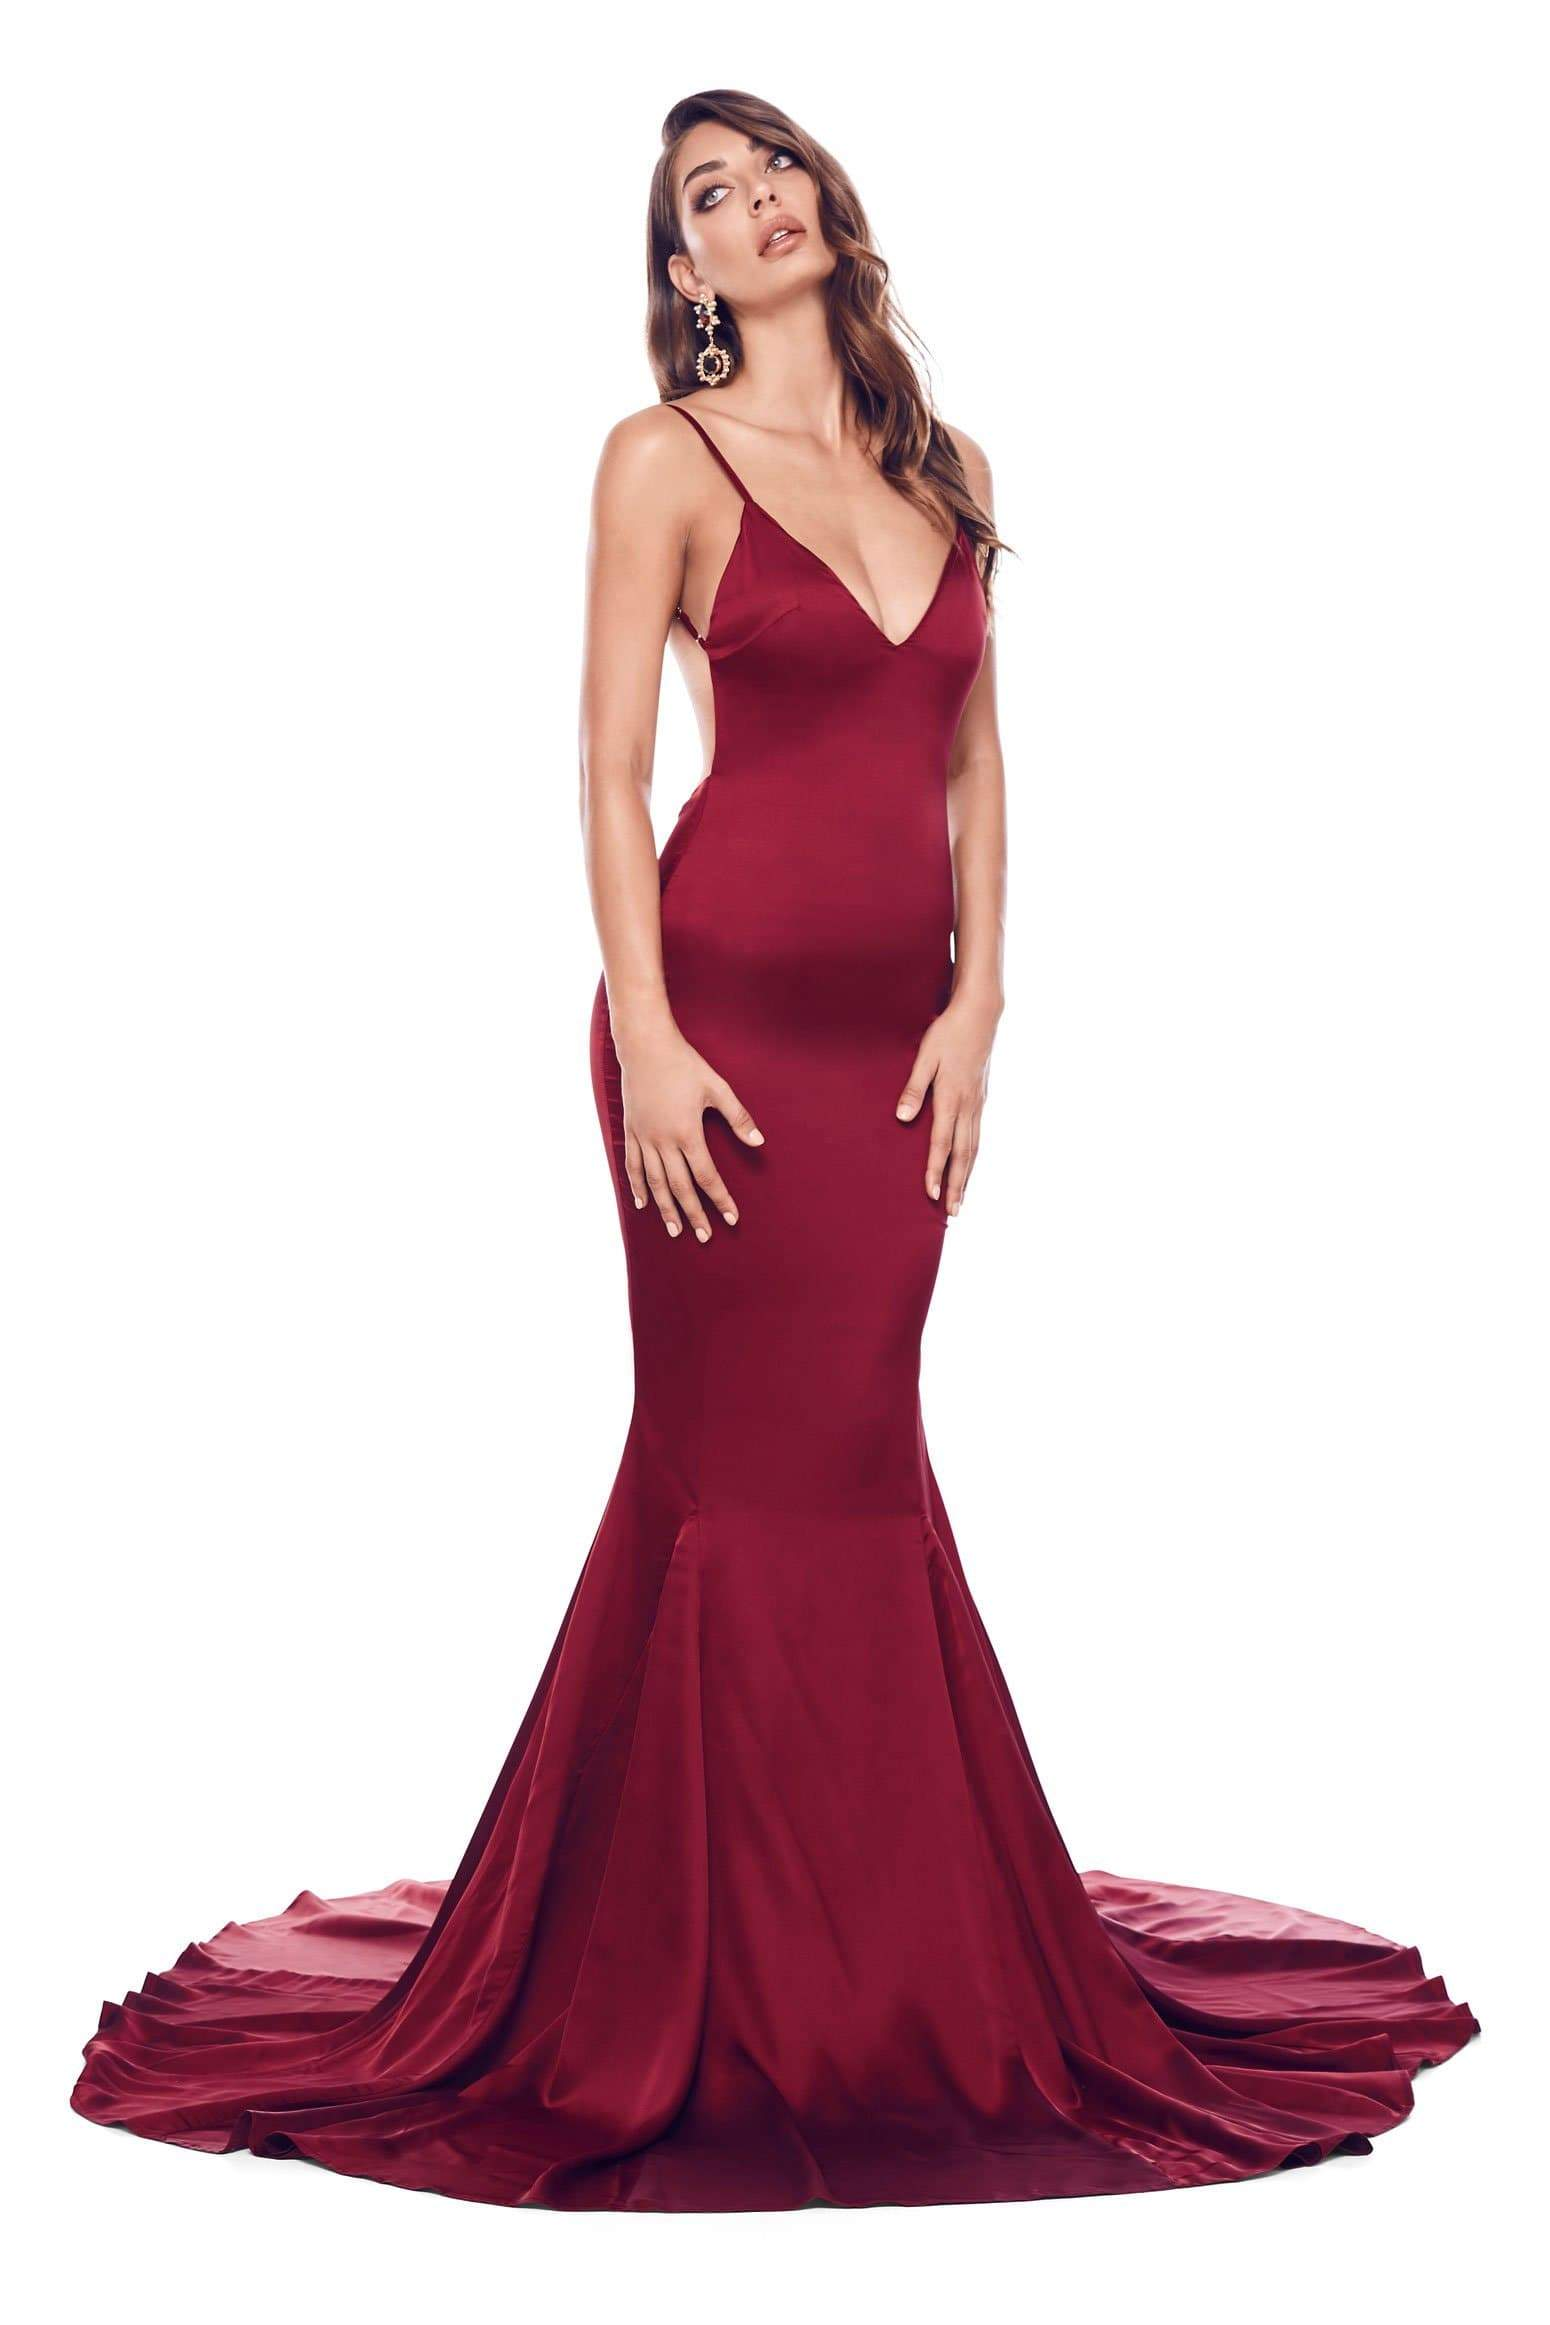 Tamara Gown - Burgundy  Preorder End of May